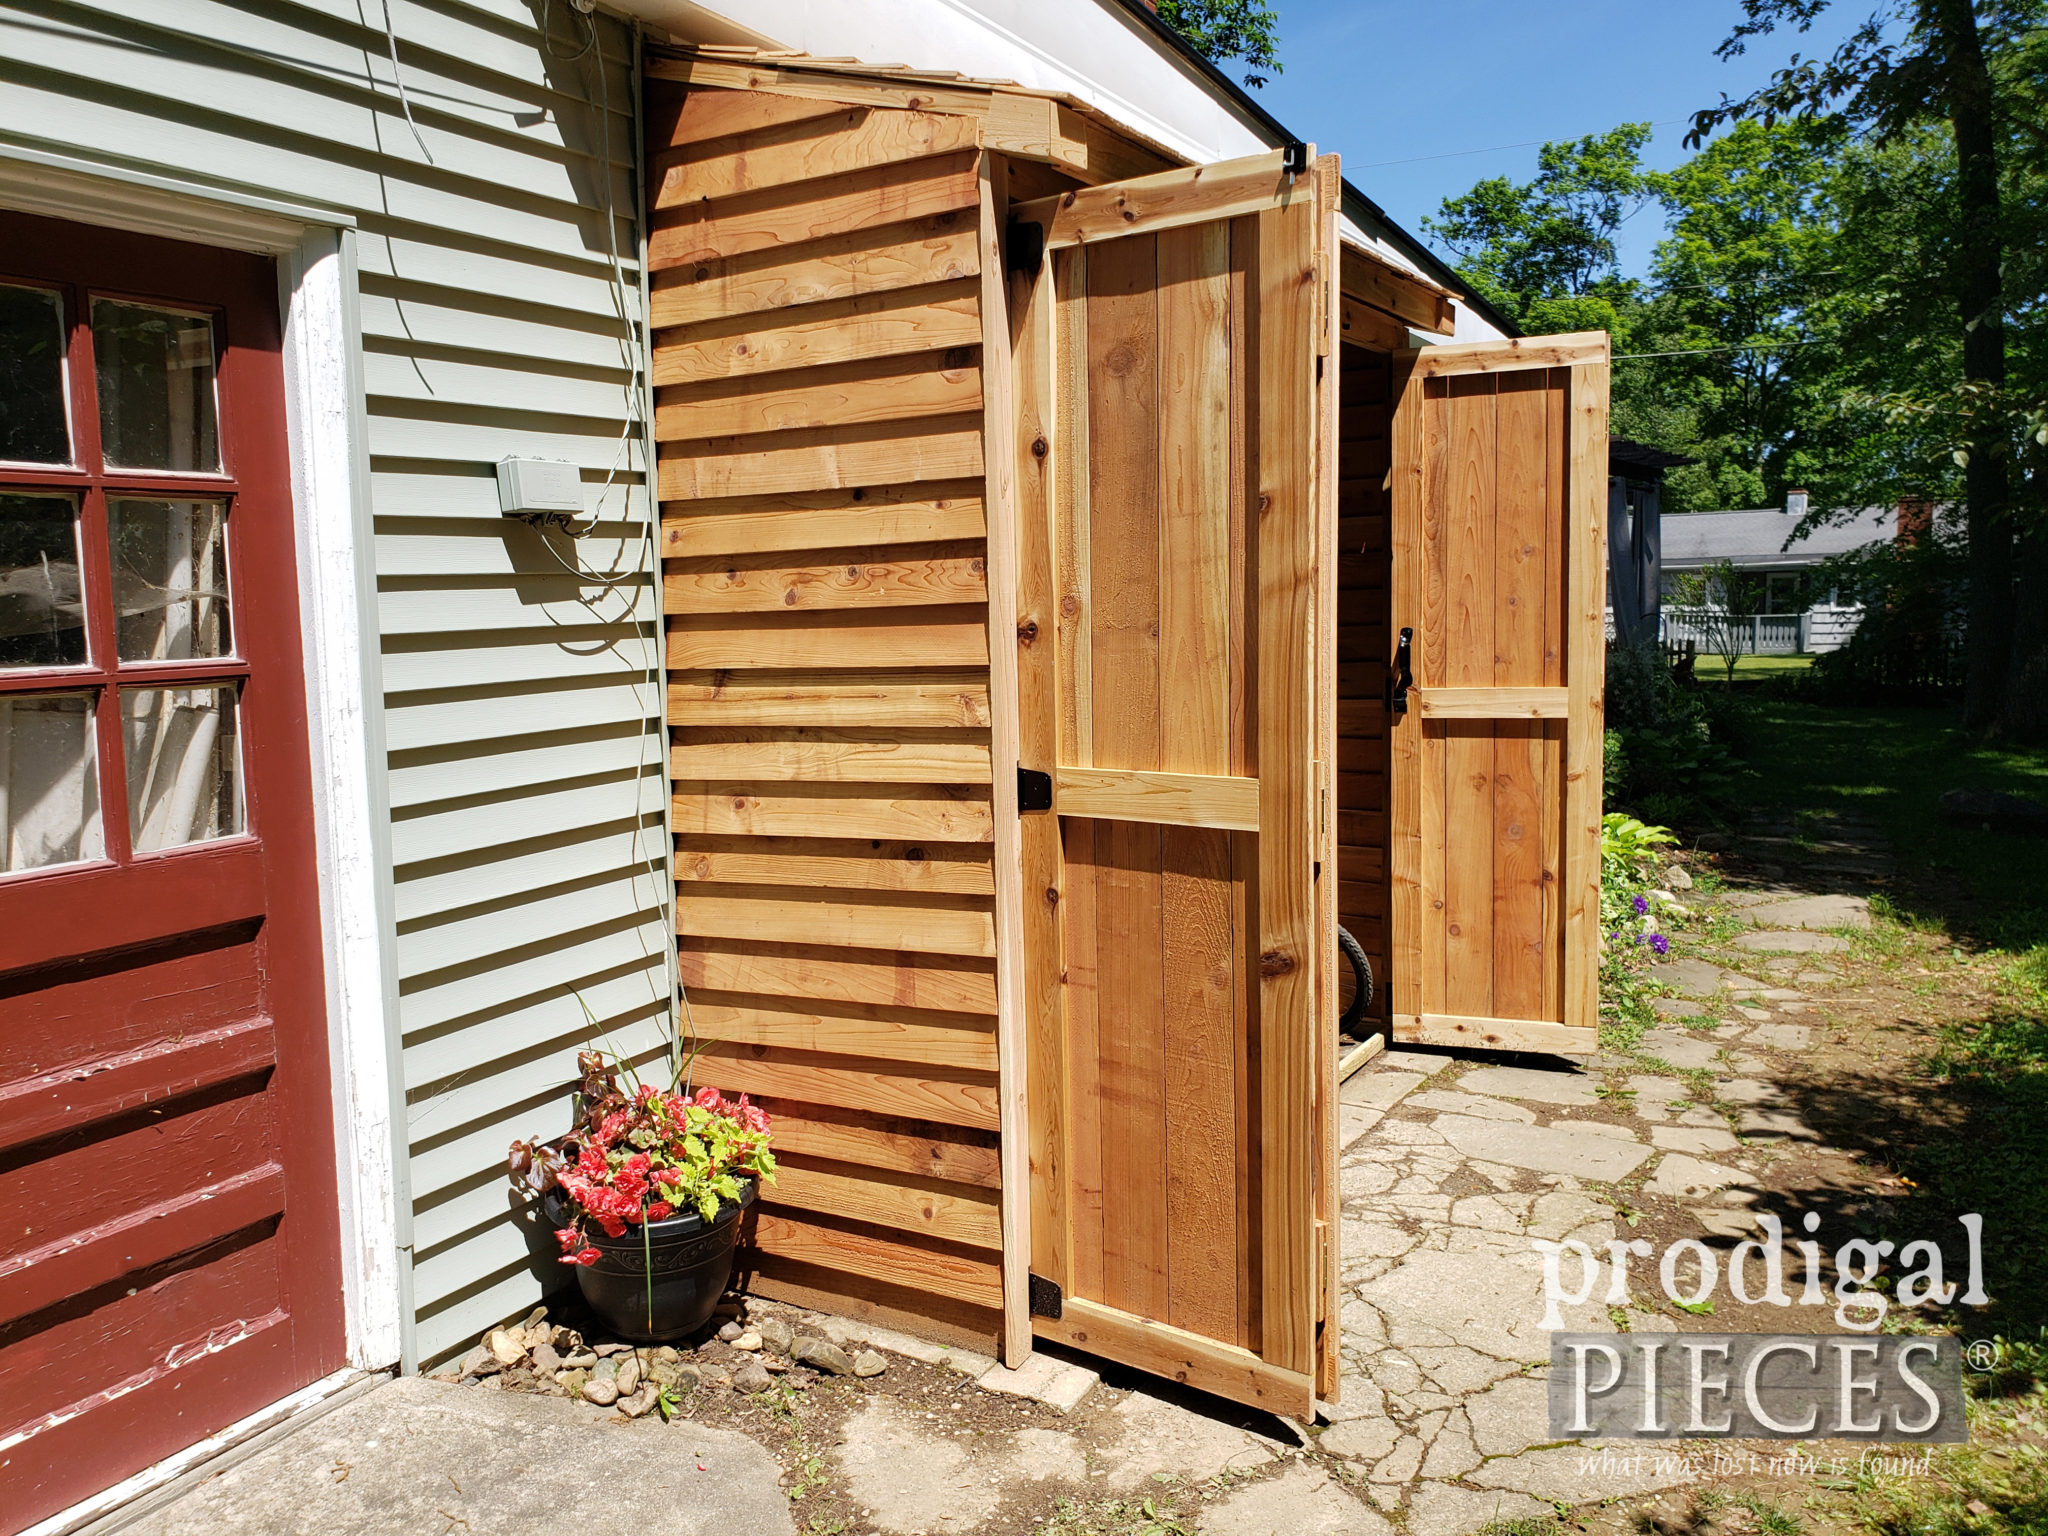 Open Bike Garden Shed with BiFold Doors by Larissa of Prodigal Pieces | prodigalpieces.com